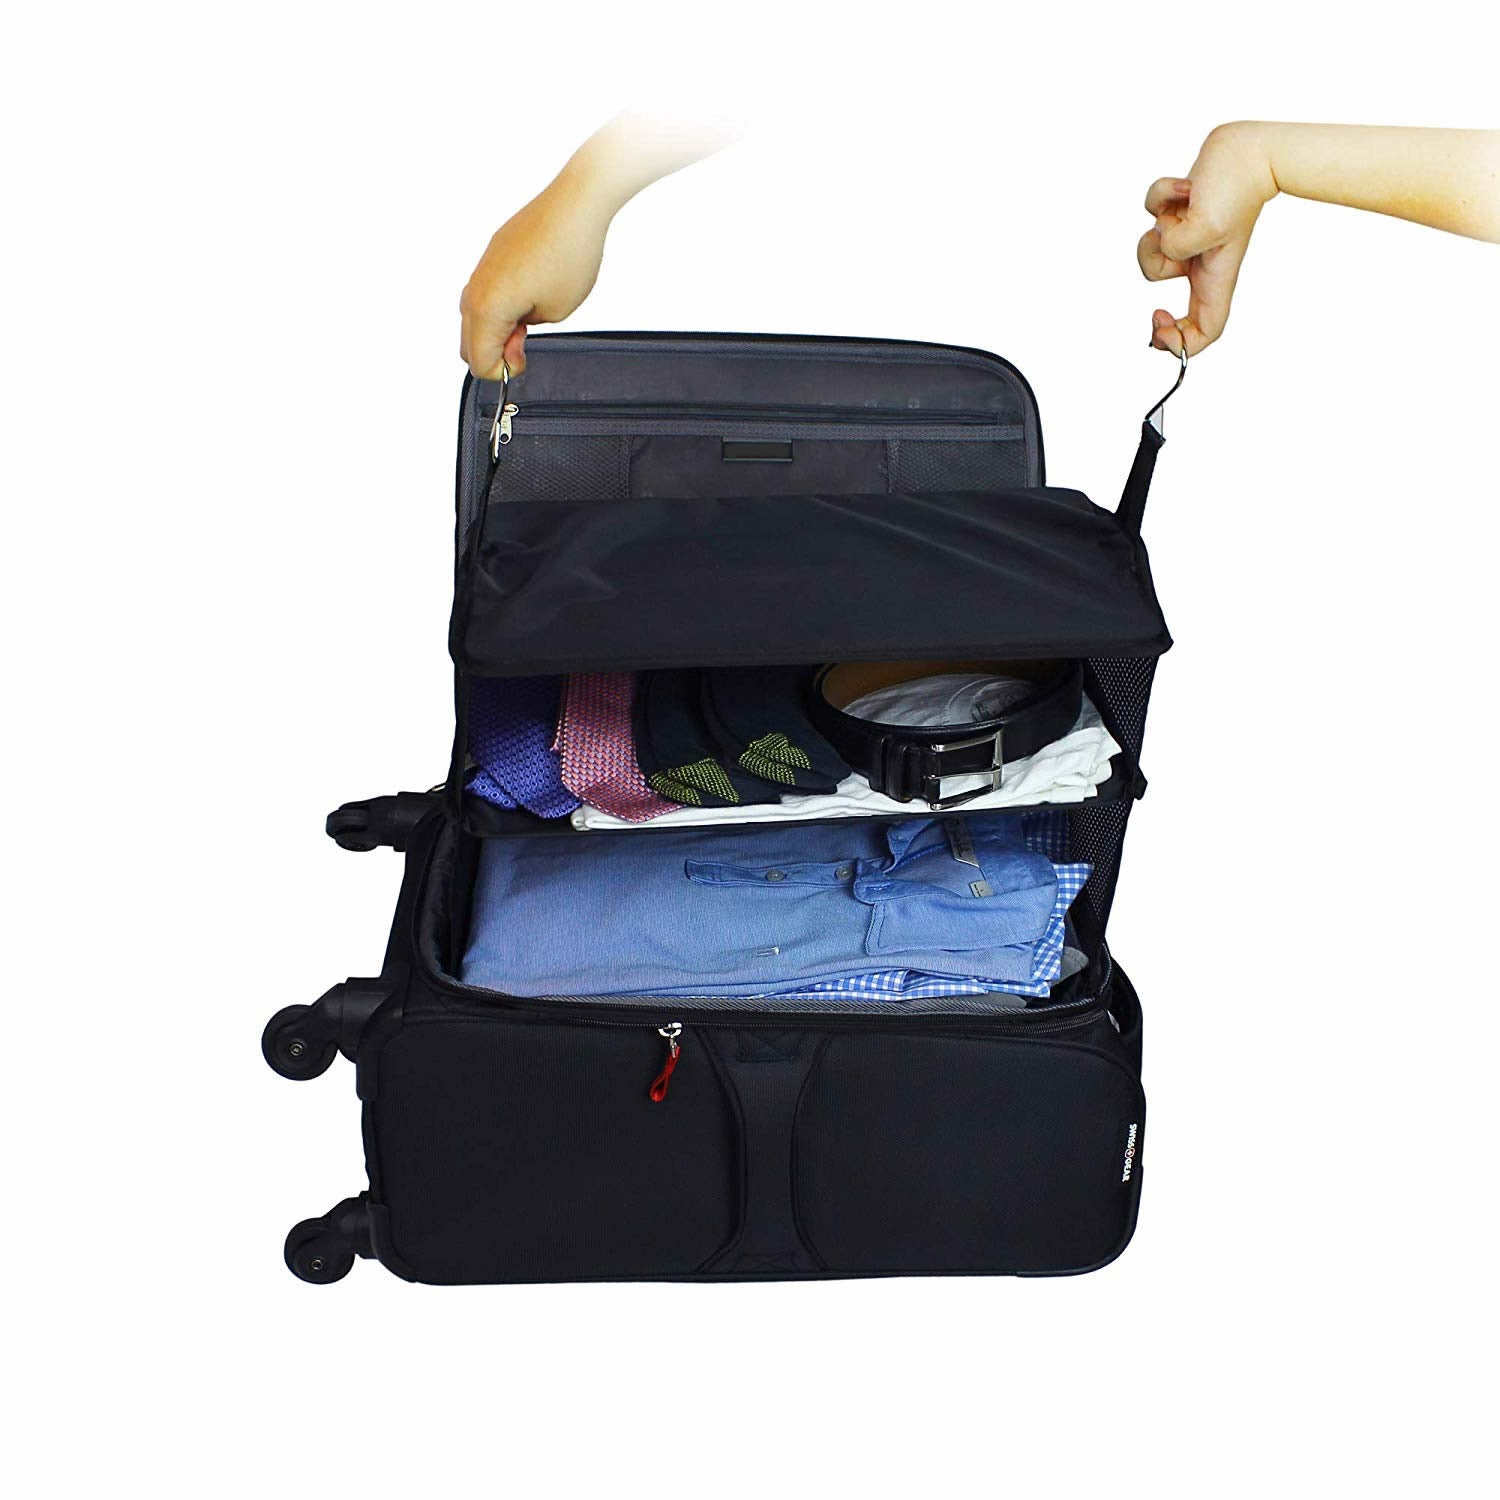 shopify-Carry On Closet Baggage Organizer-1